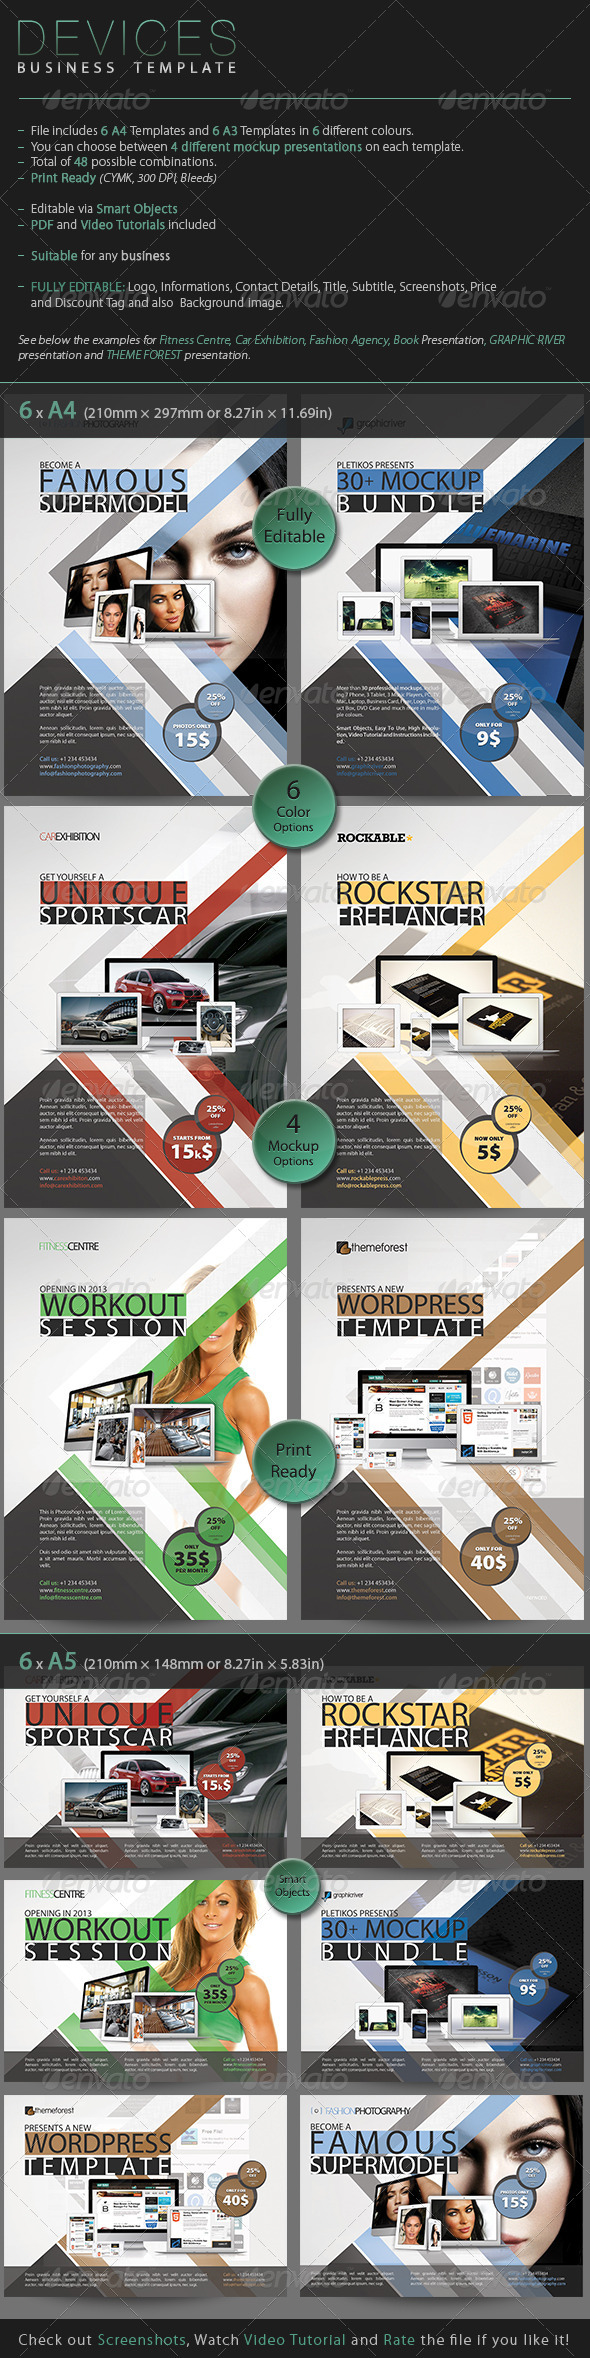 GraphicRiver Devices Business Template 3327569